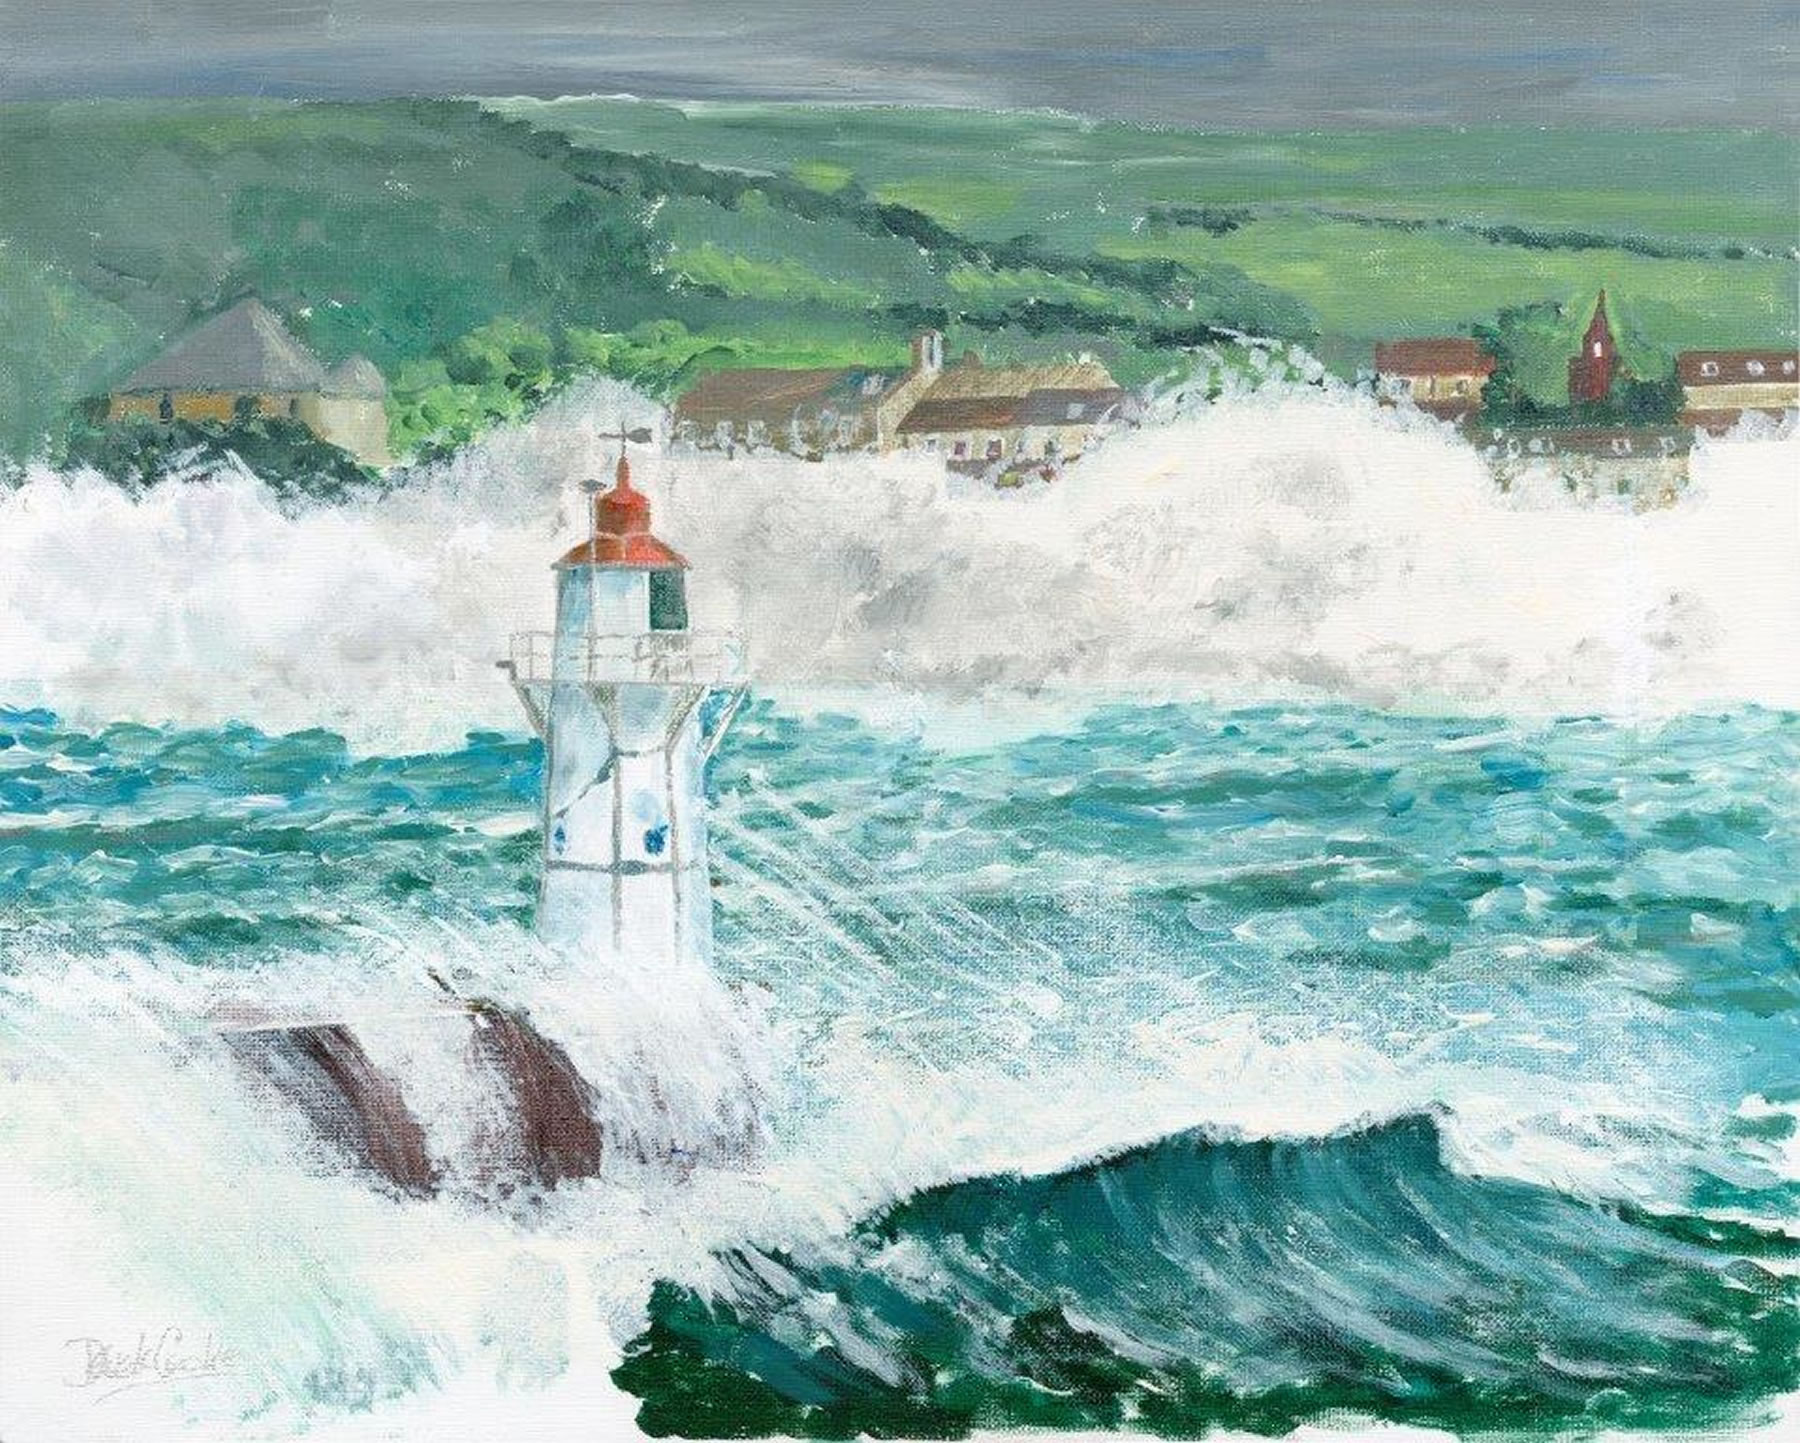 Art Prints - Lighthouse and rough seas in Stormy Weather